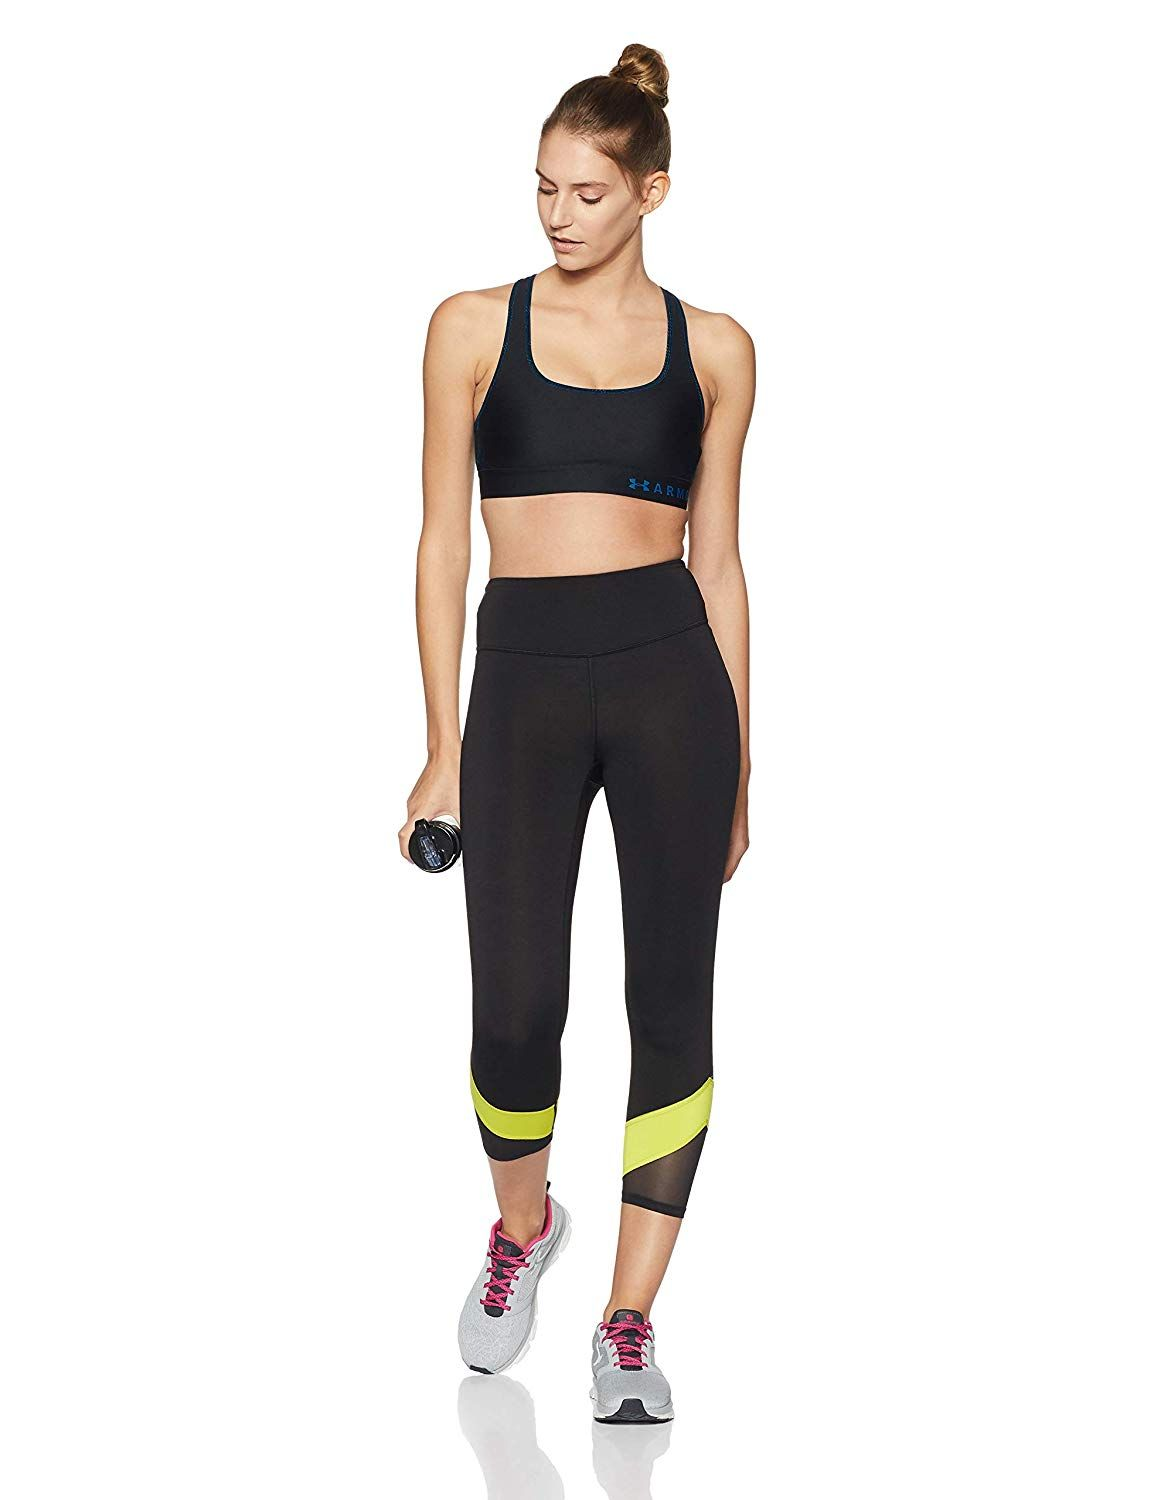 60ad421127f5b Amazon.com  Under Armour Women s Armour Mid Crossback Print Sports Bra   Sports   Outdoors